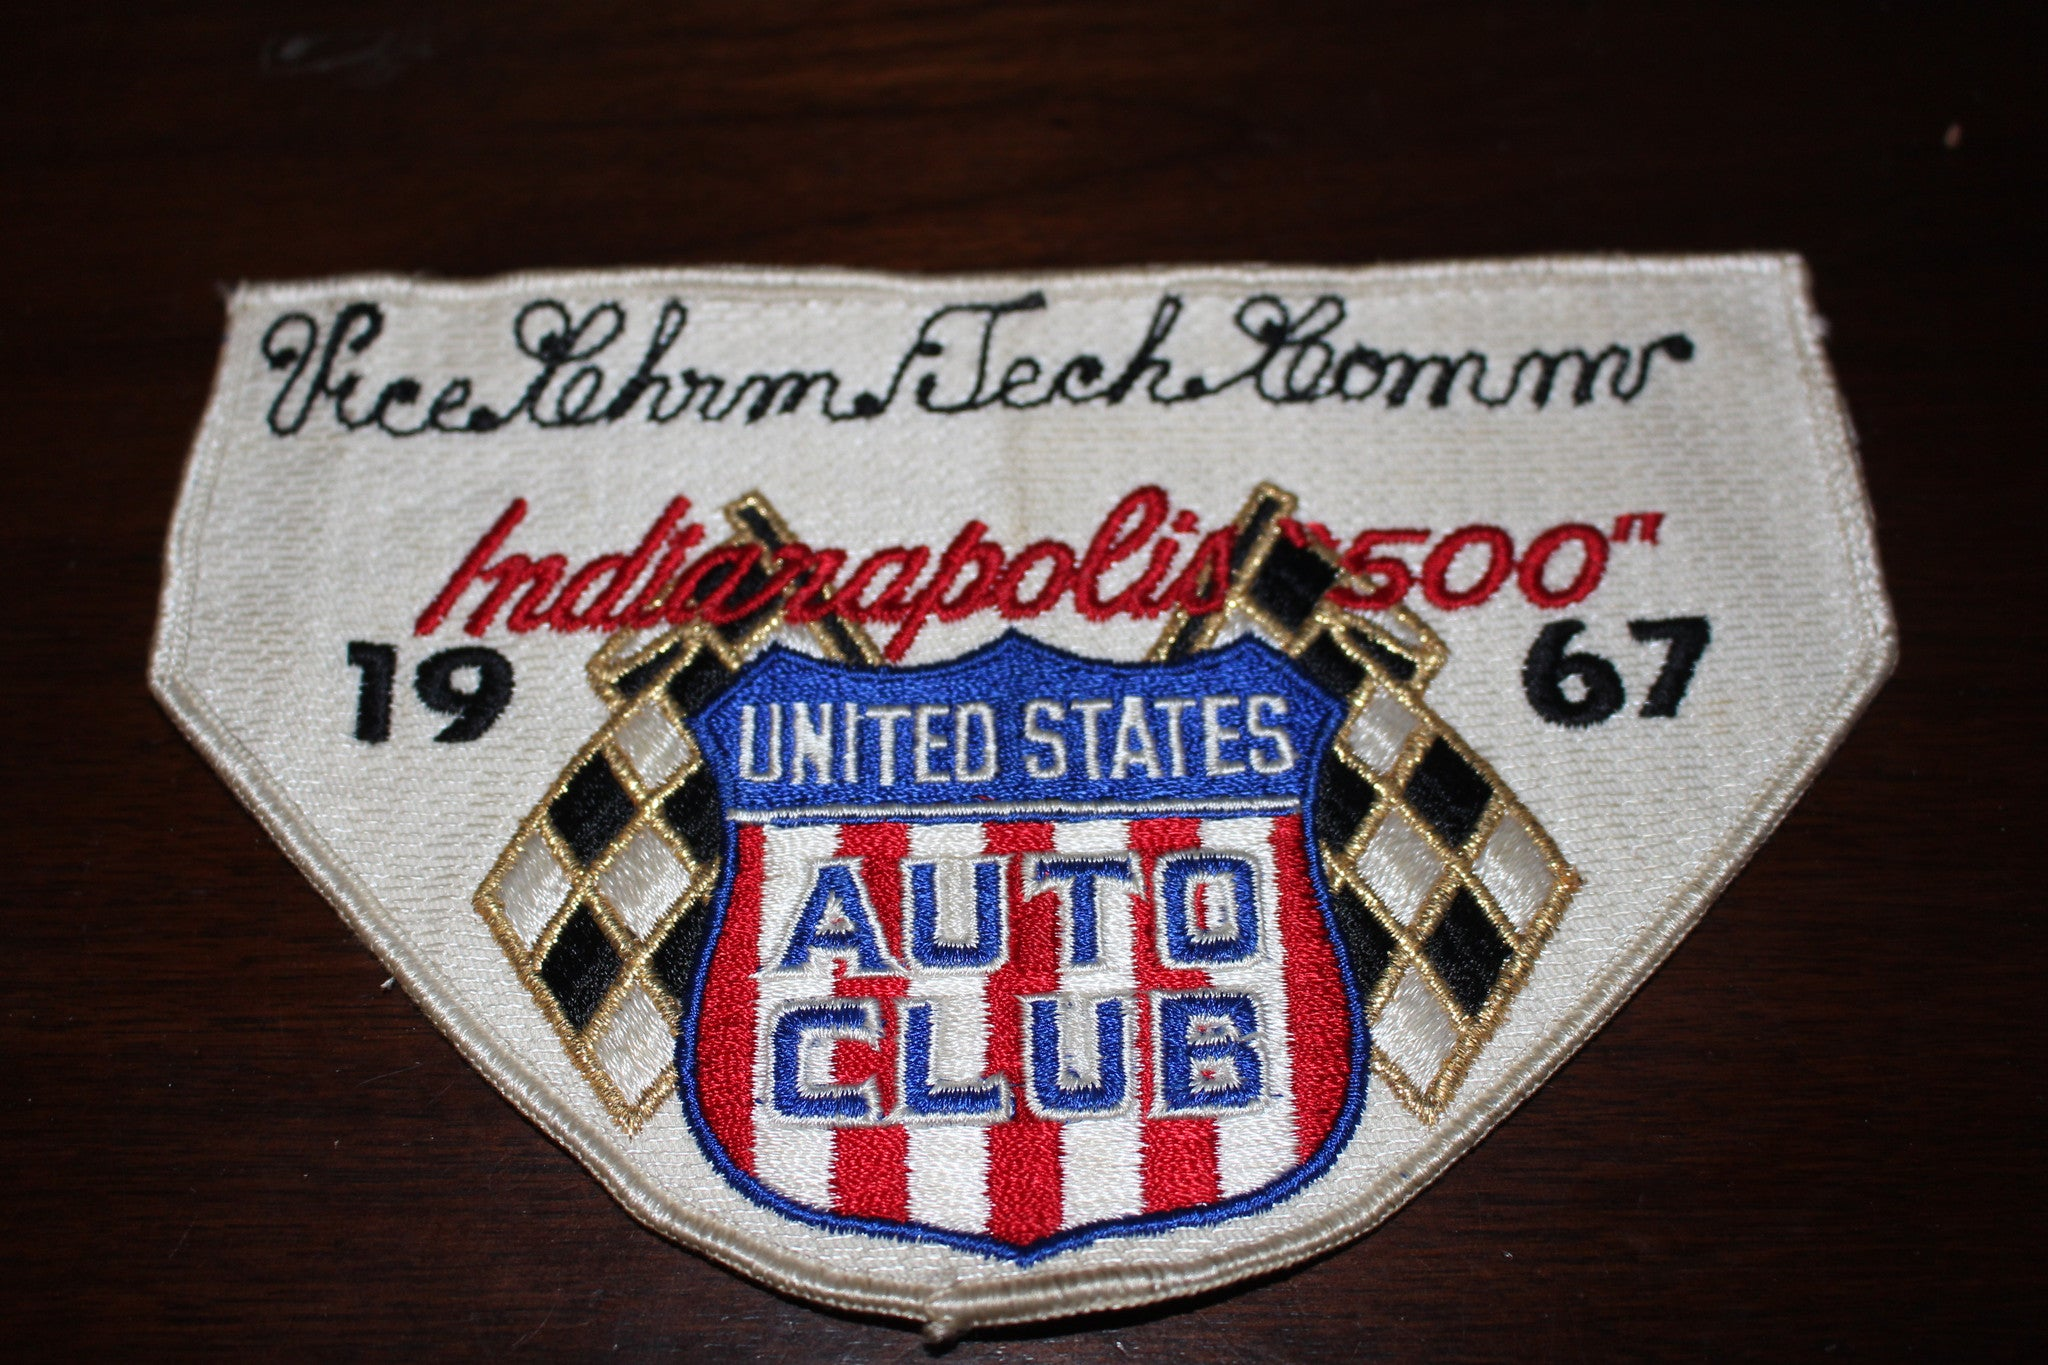 1967 Indianapolis 500 Vice Chairman Technical Committee Arm Band - Vintage Indy Sports